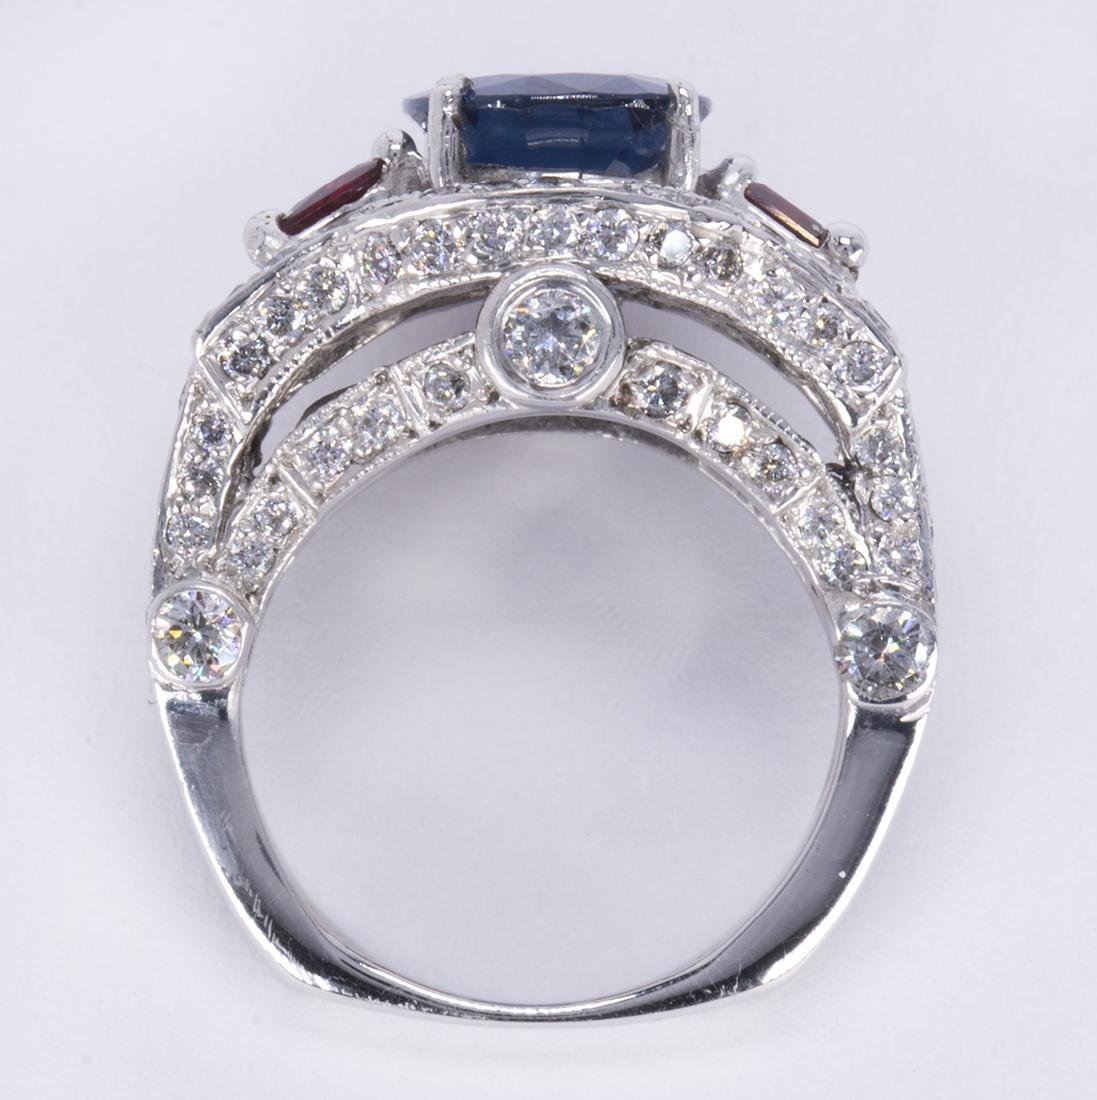 Sapphire, ruby, diamond and 14k white gold ring - 3